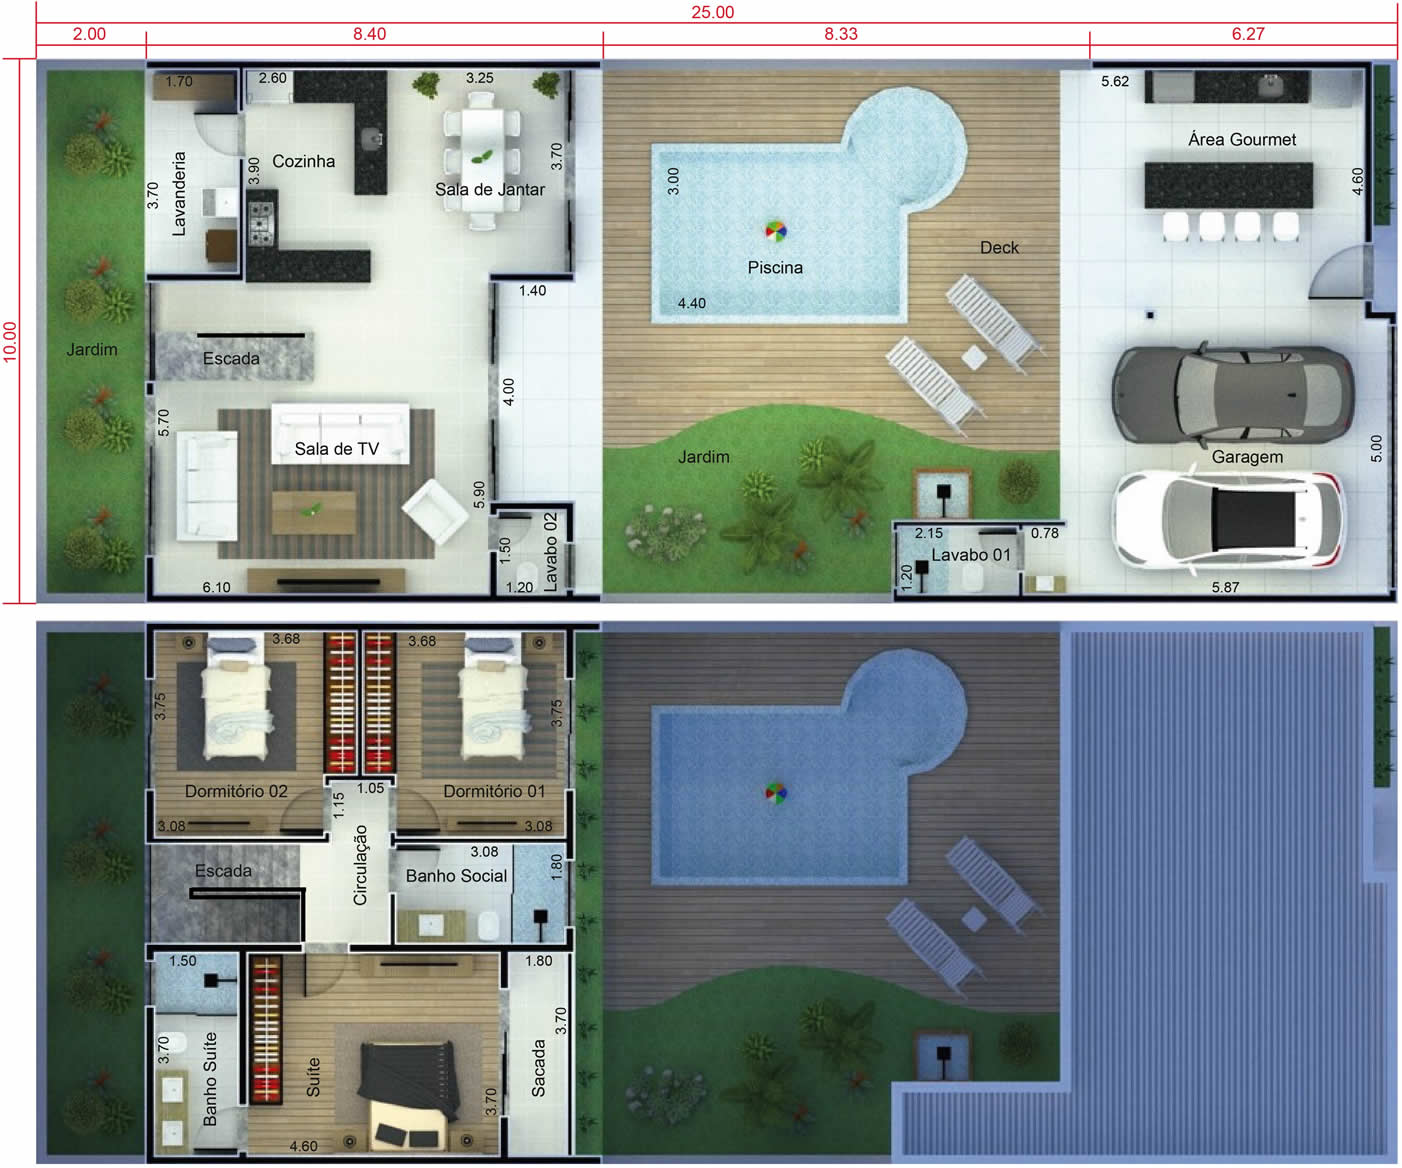 Floor plan with swimming pool in front10x25